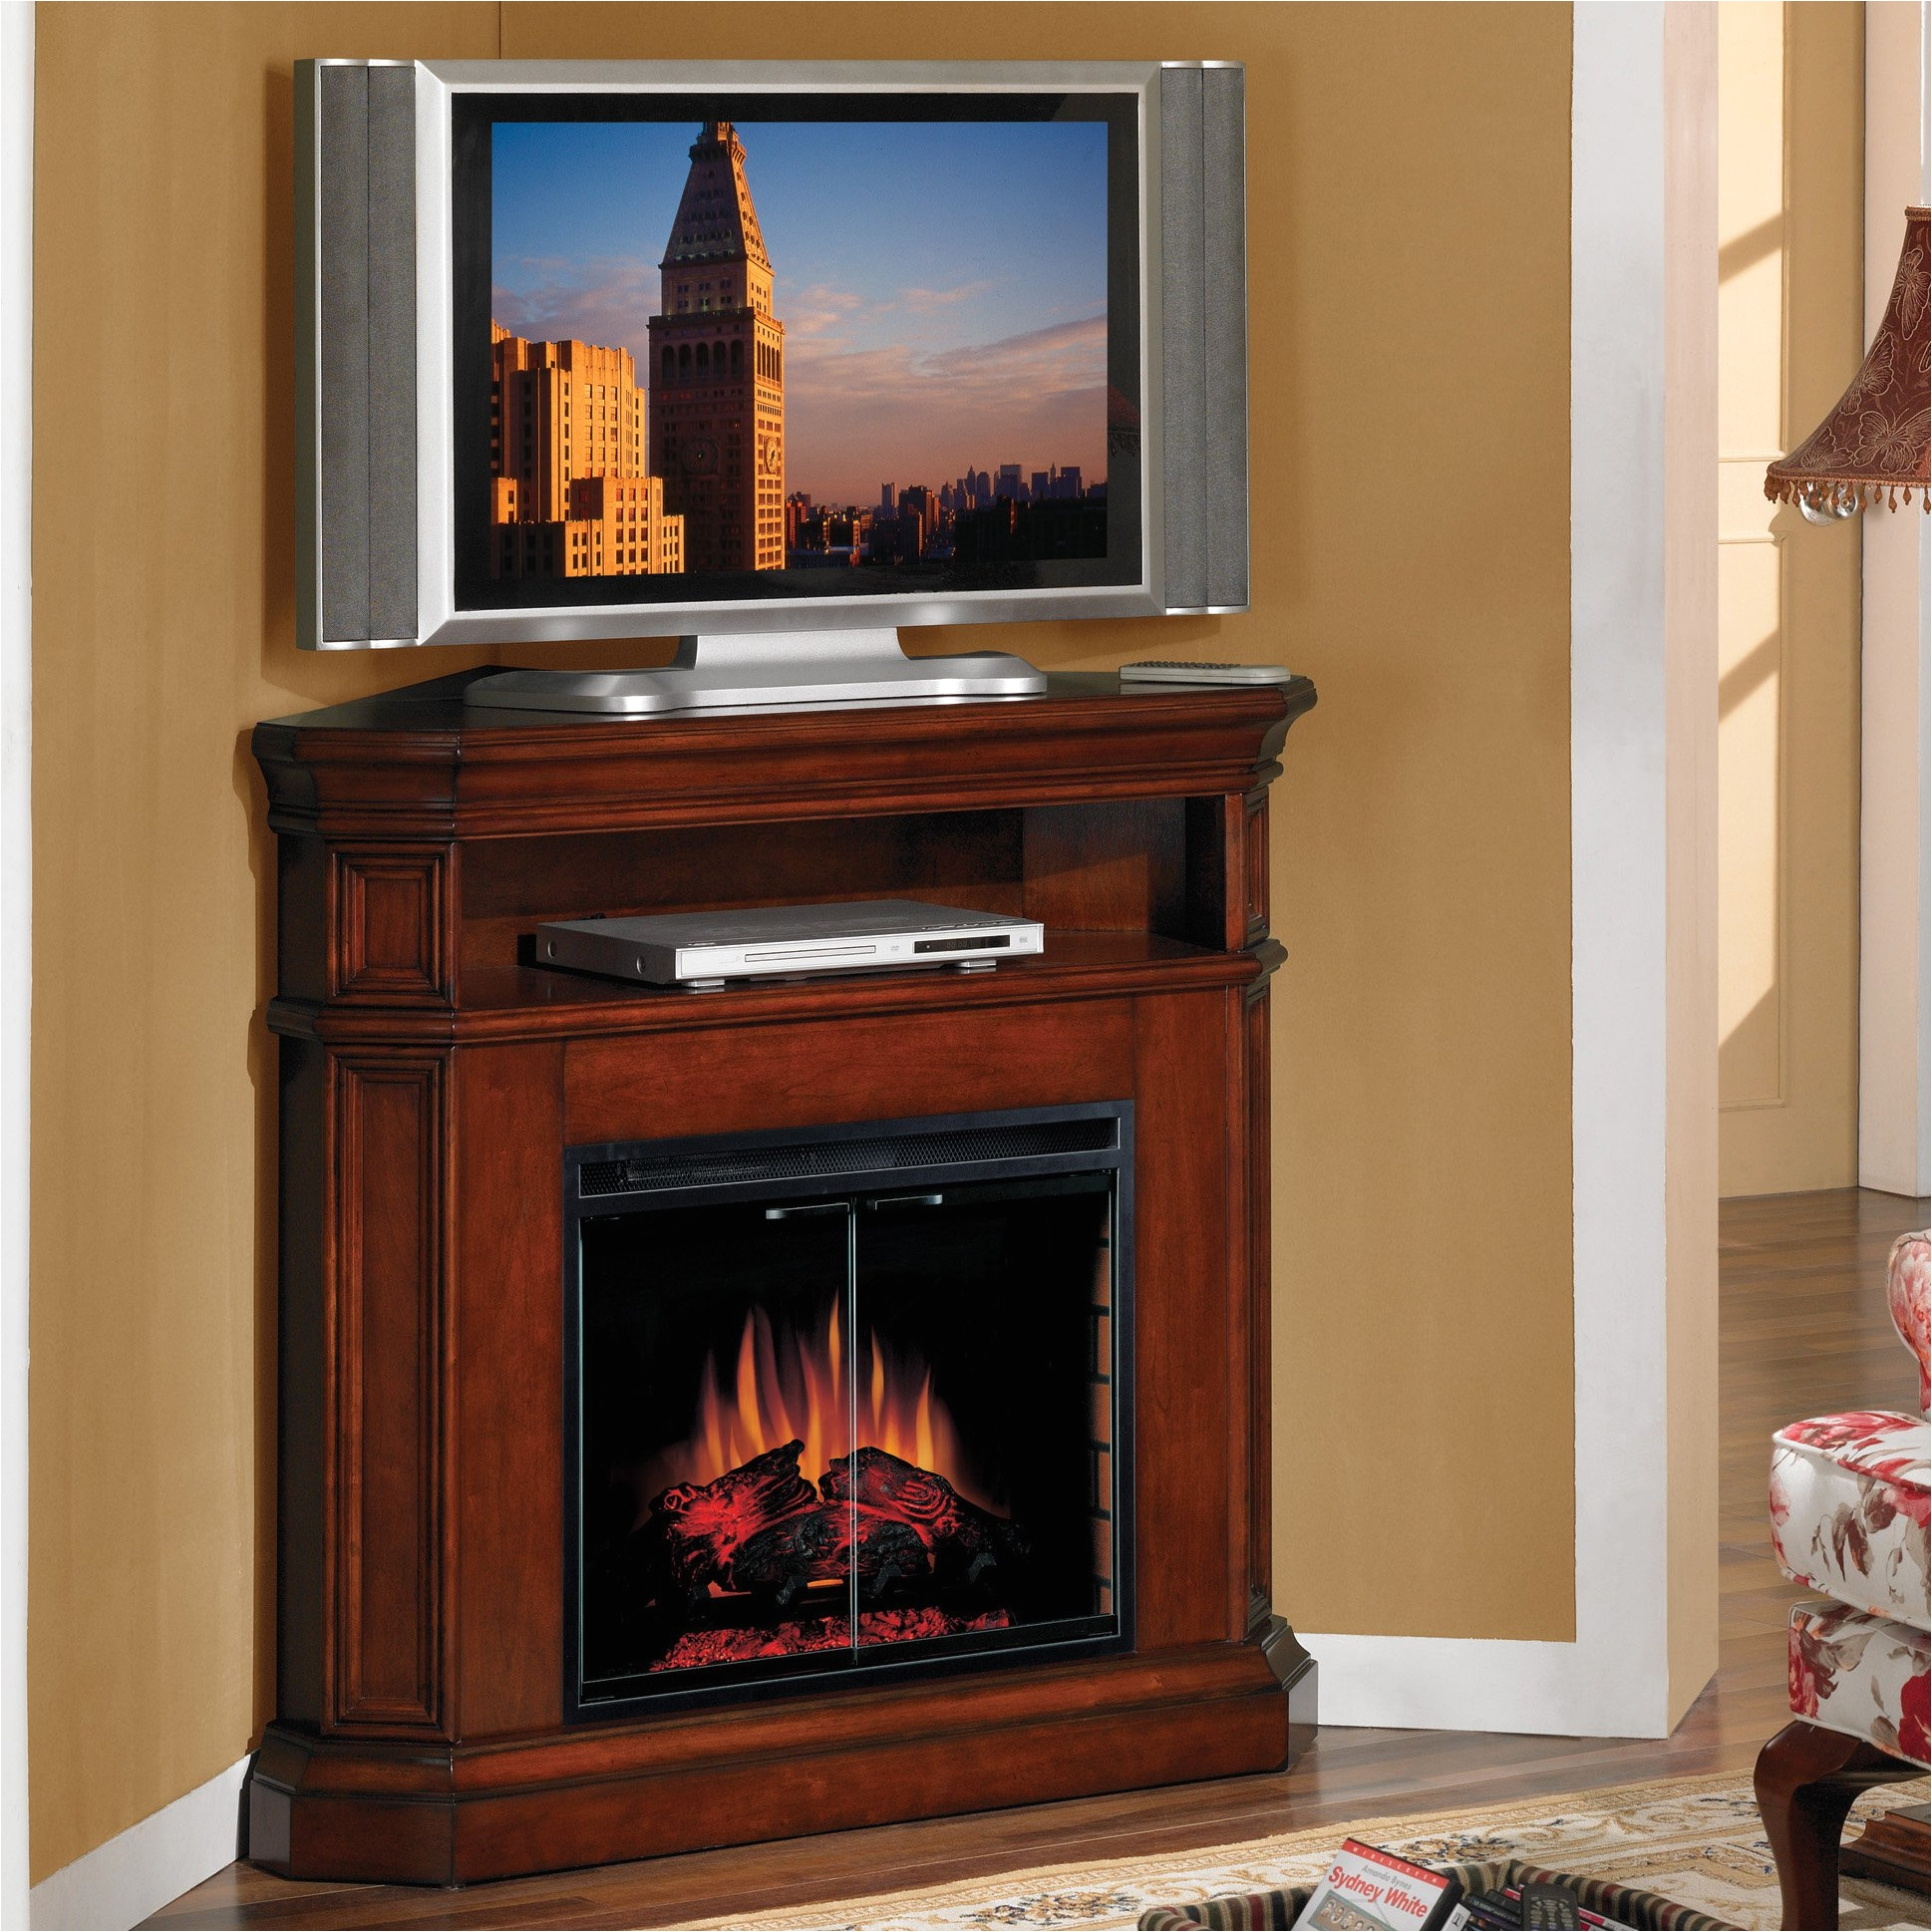 Big Lots Corner Fireplace Lovely Big Lots Fireplace Corner Electric Fireplace Corner Tv Stand